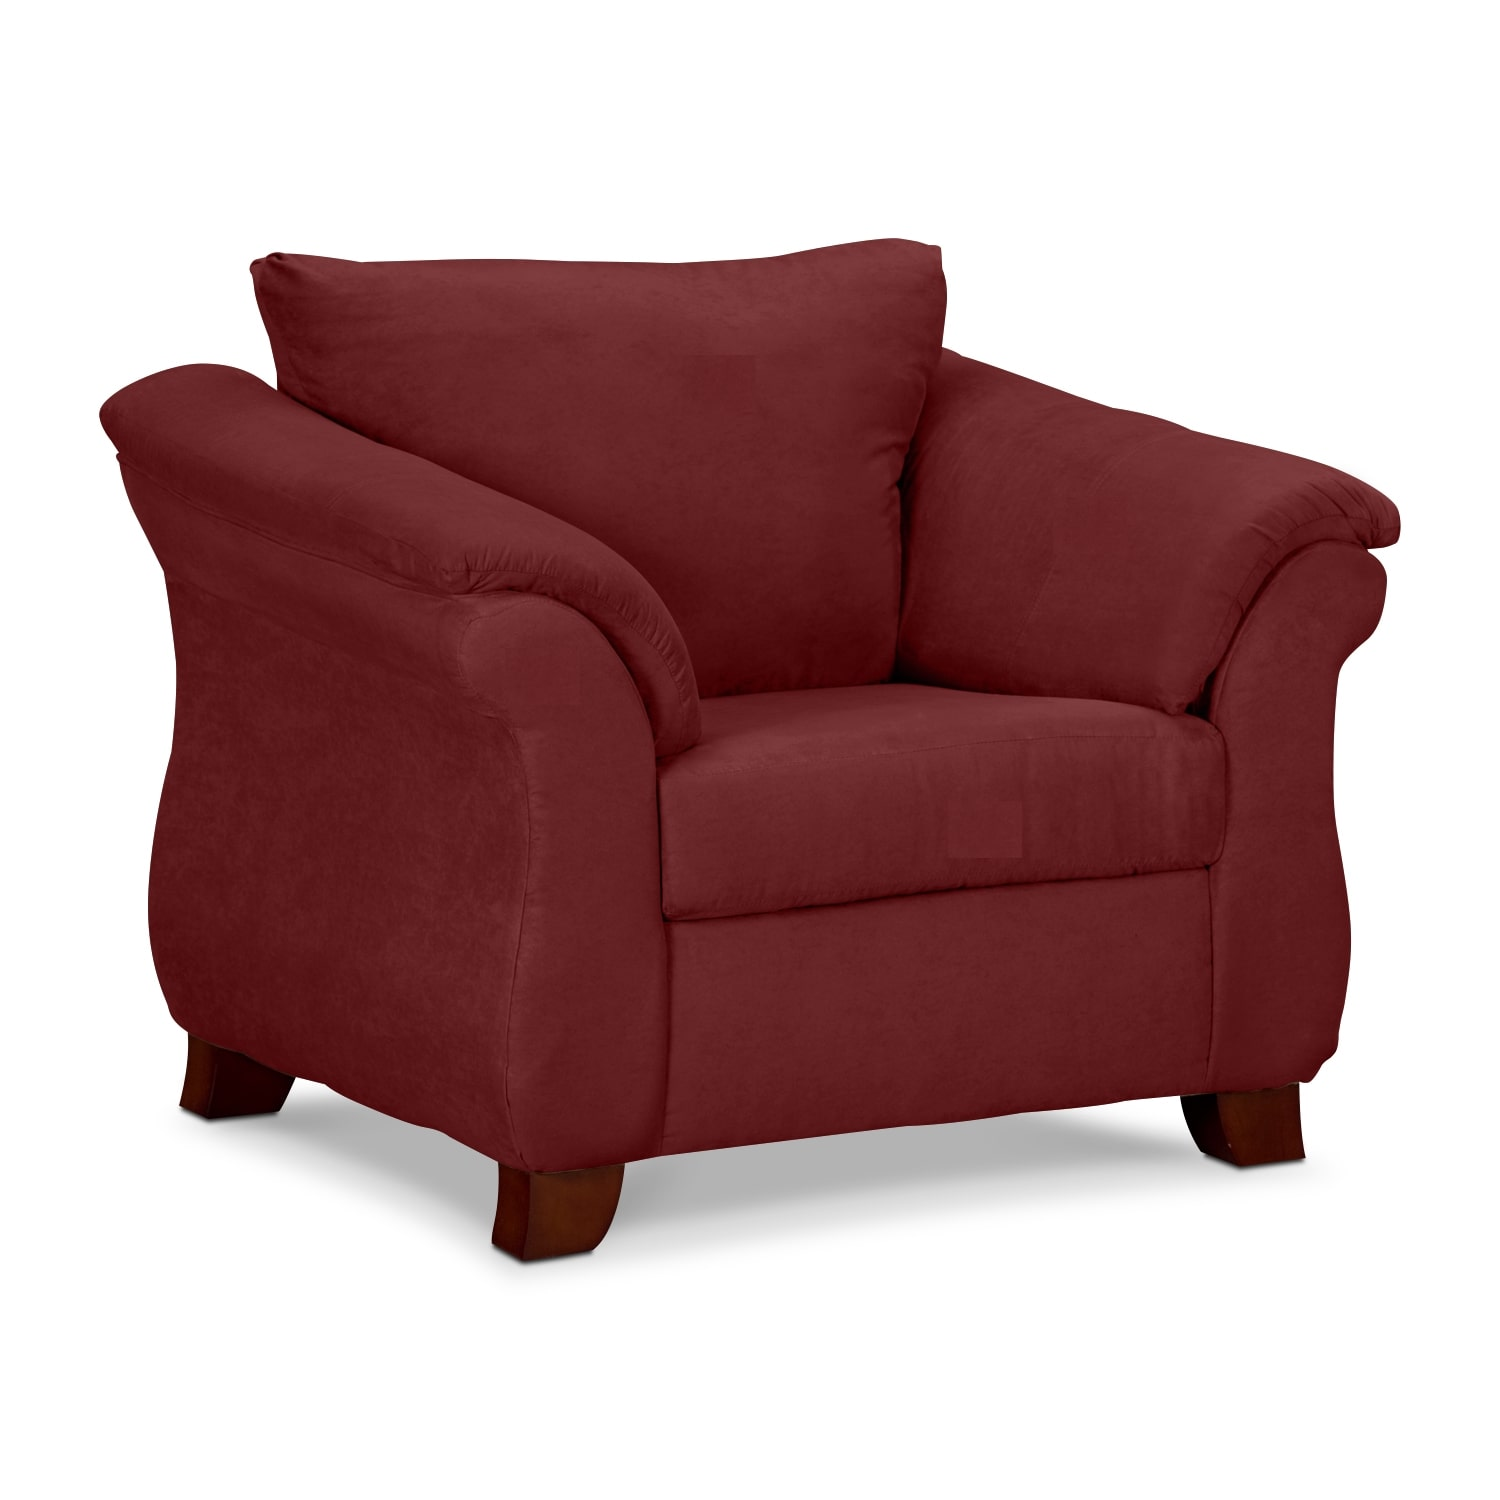 Living Room Furniture - Adrian Red Chair